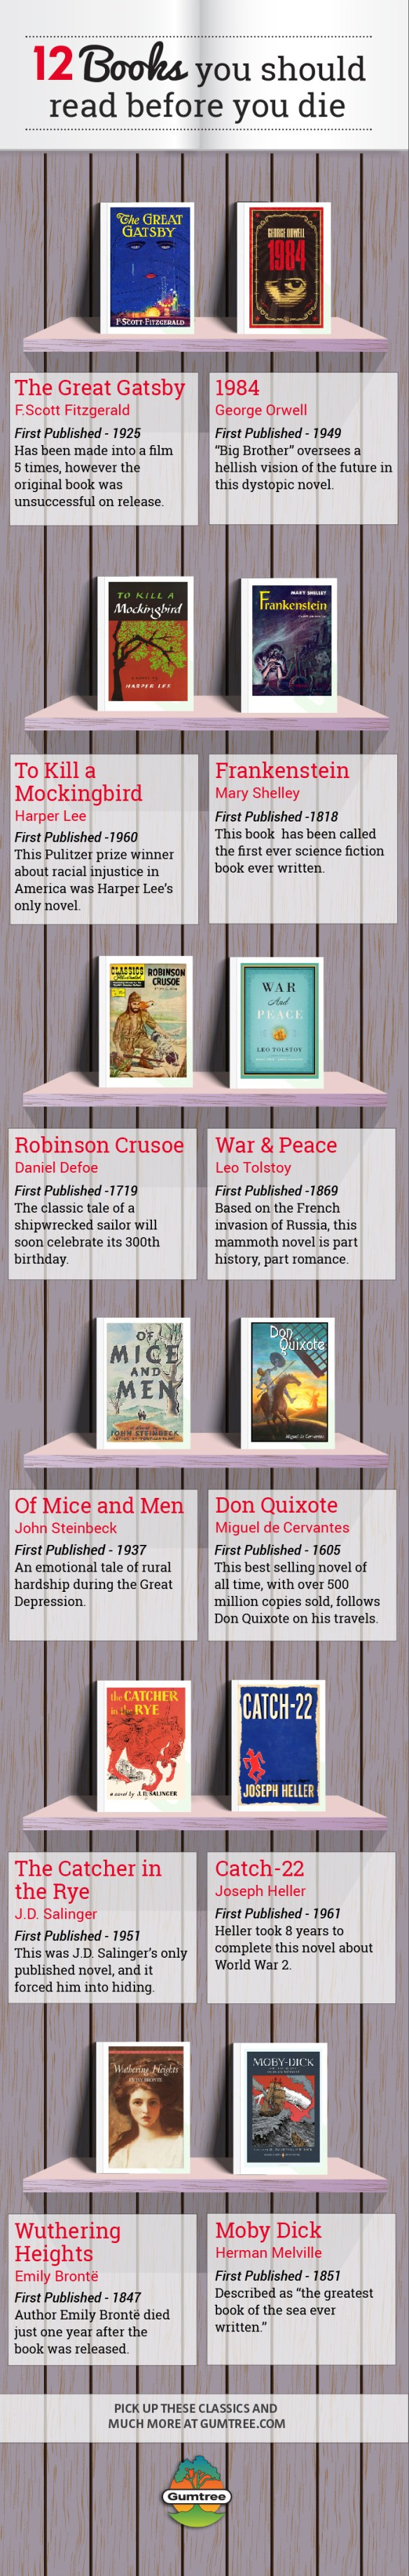 A Gumtree graphic - 12 books to read before you die